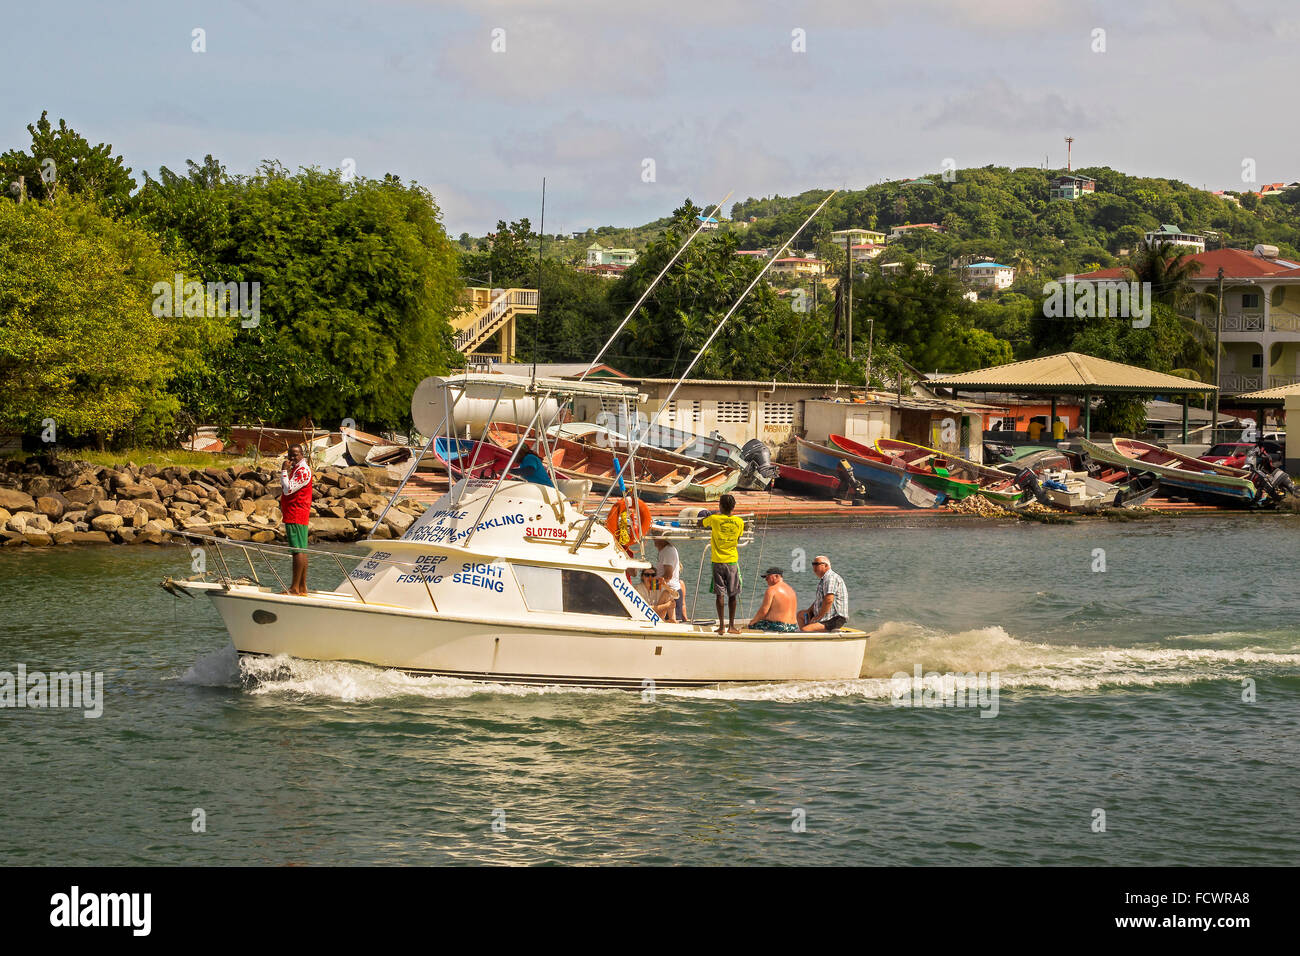 Sightseeing-Boot Rodney Bay St. Lucia West Indies Stockbild